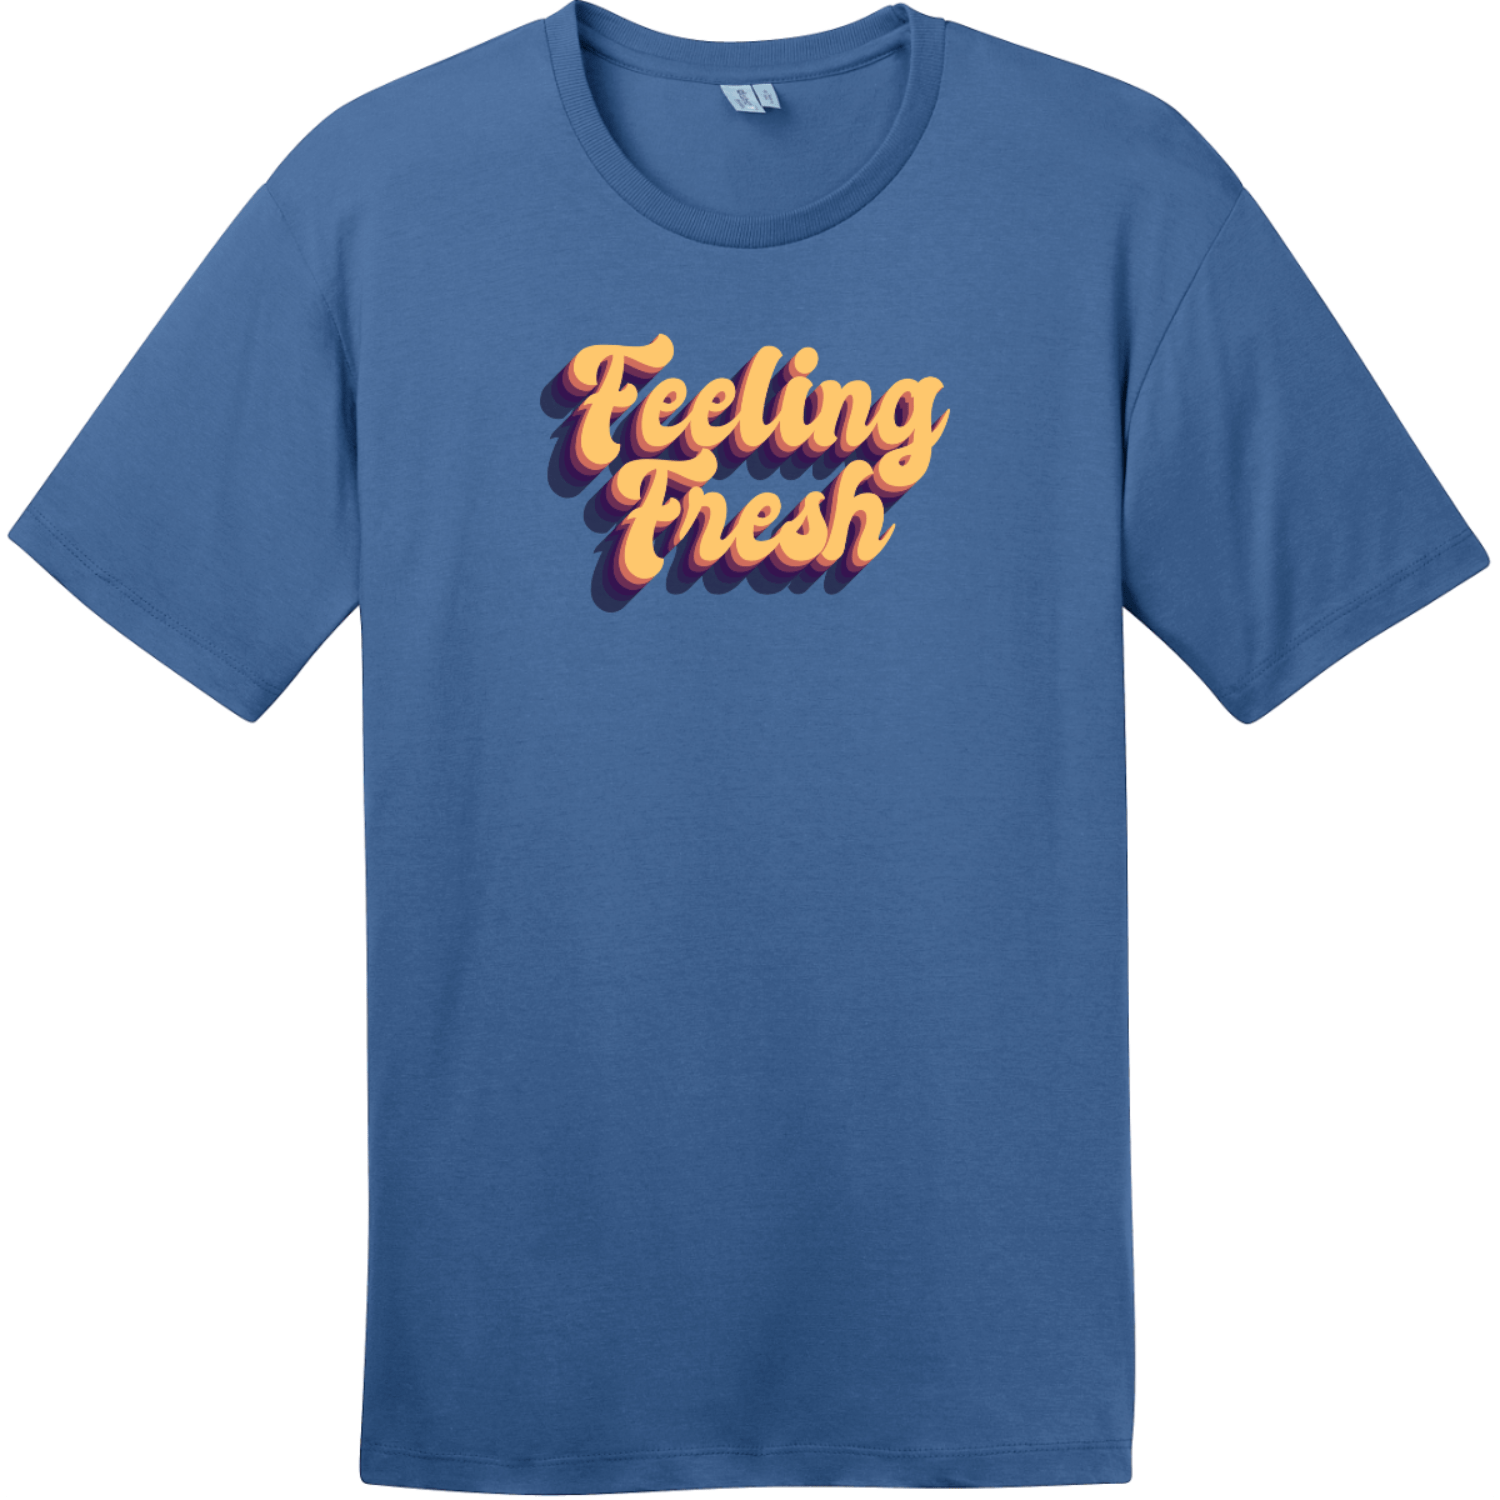 Feeling Fresh Retro T-Shirt Maritime Blue District Perfect Weight Tee DT104